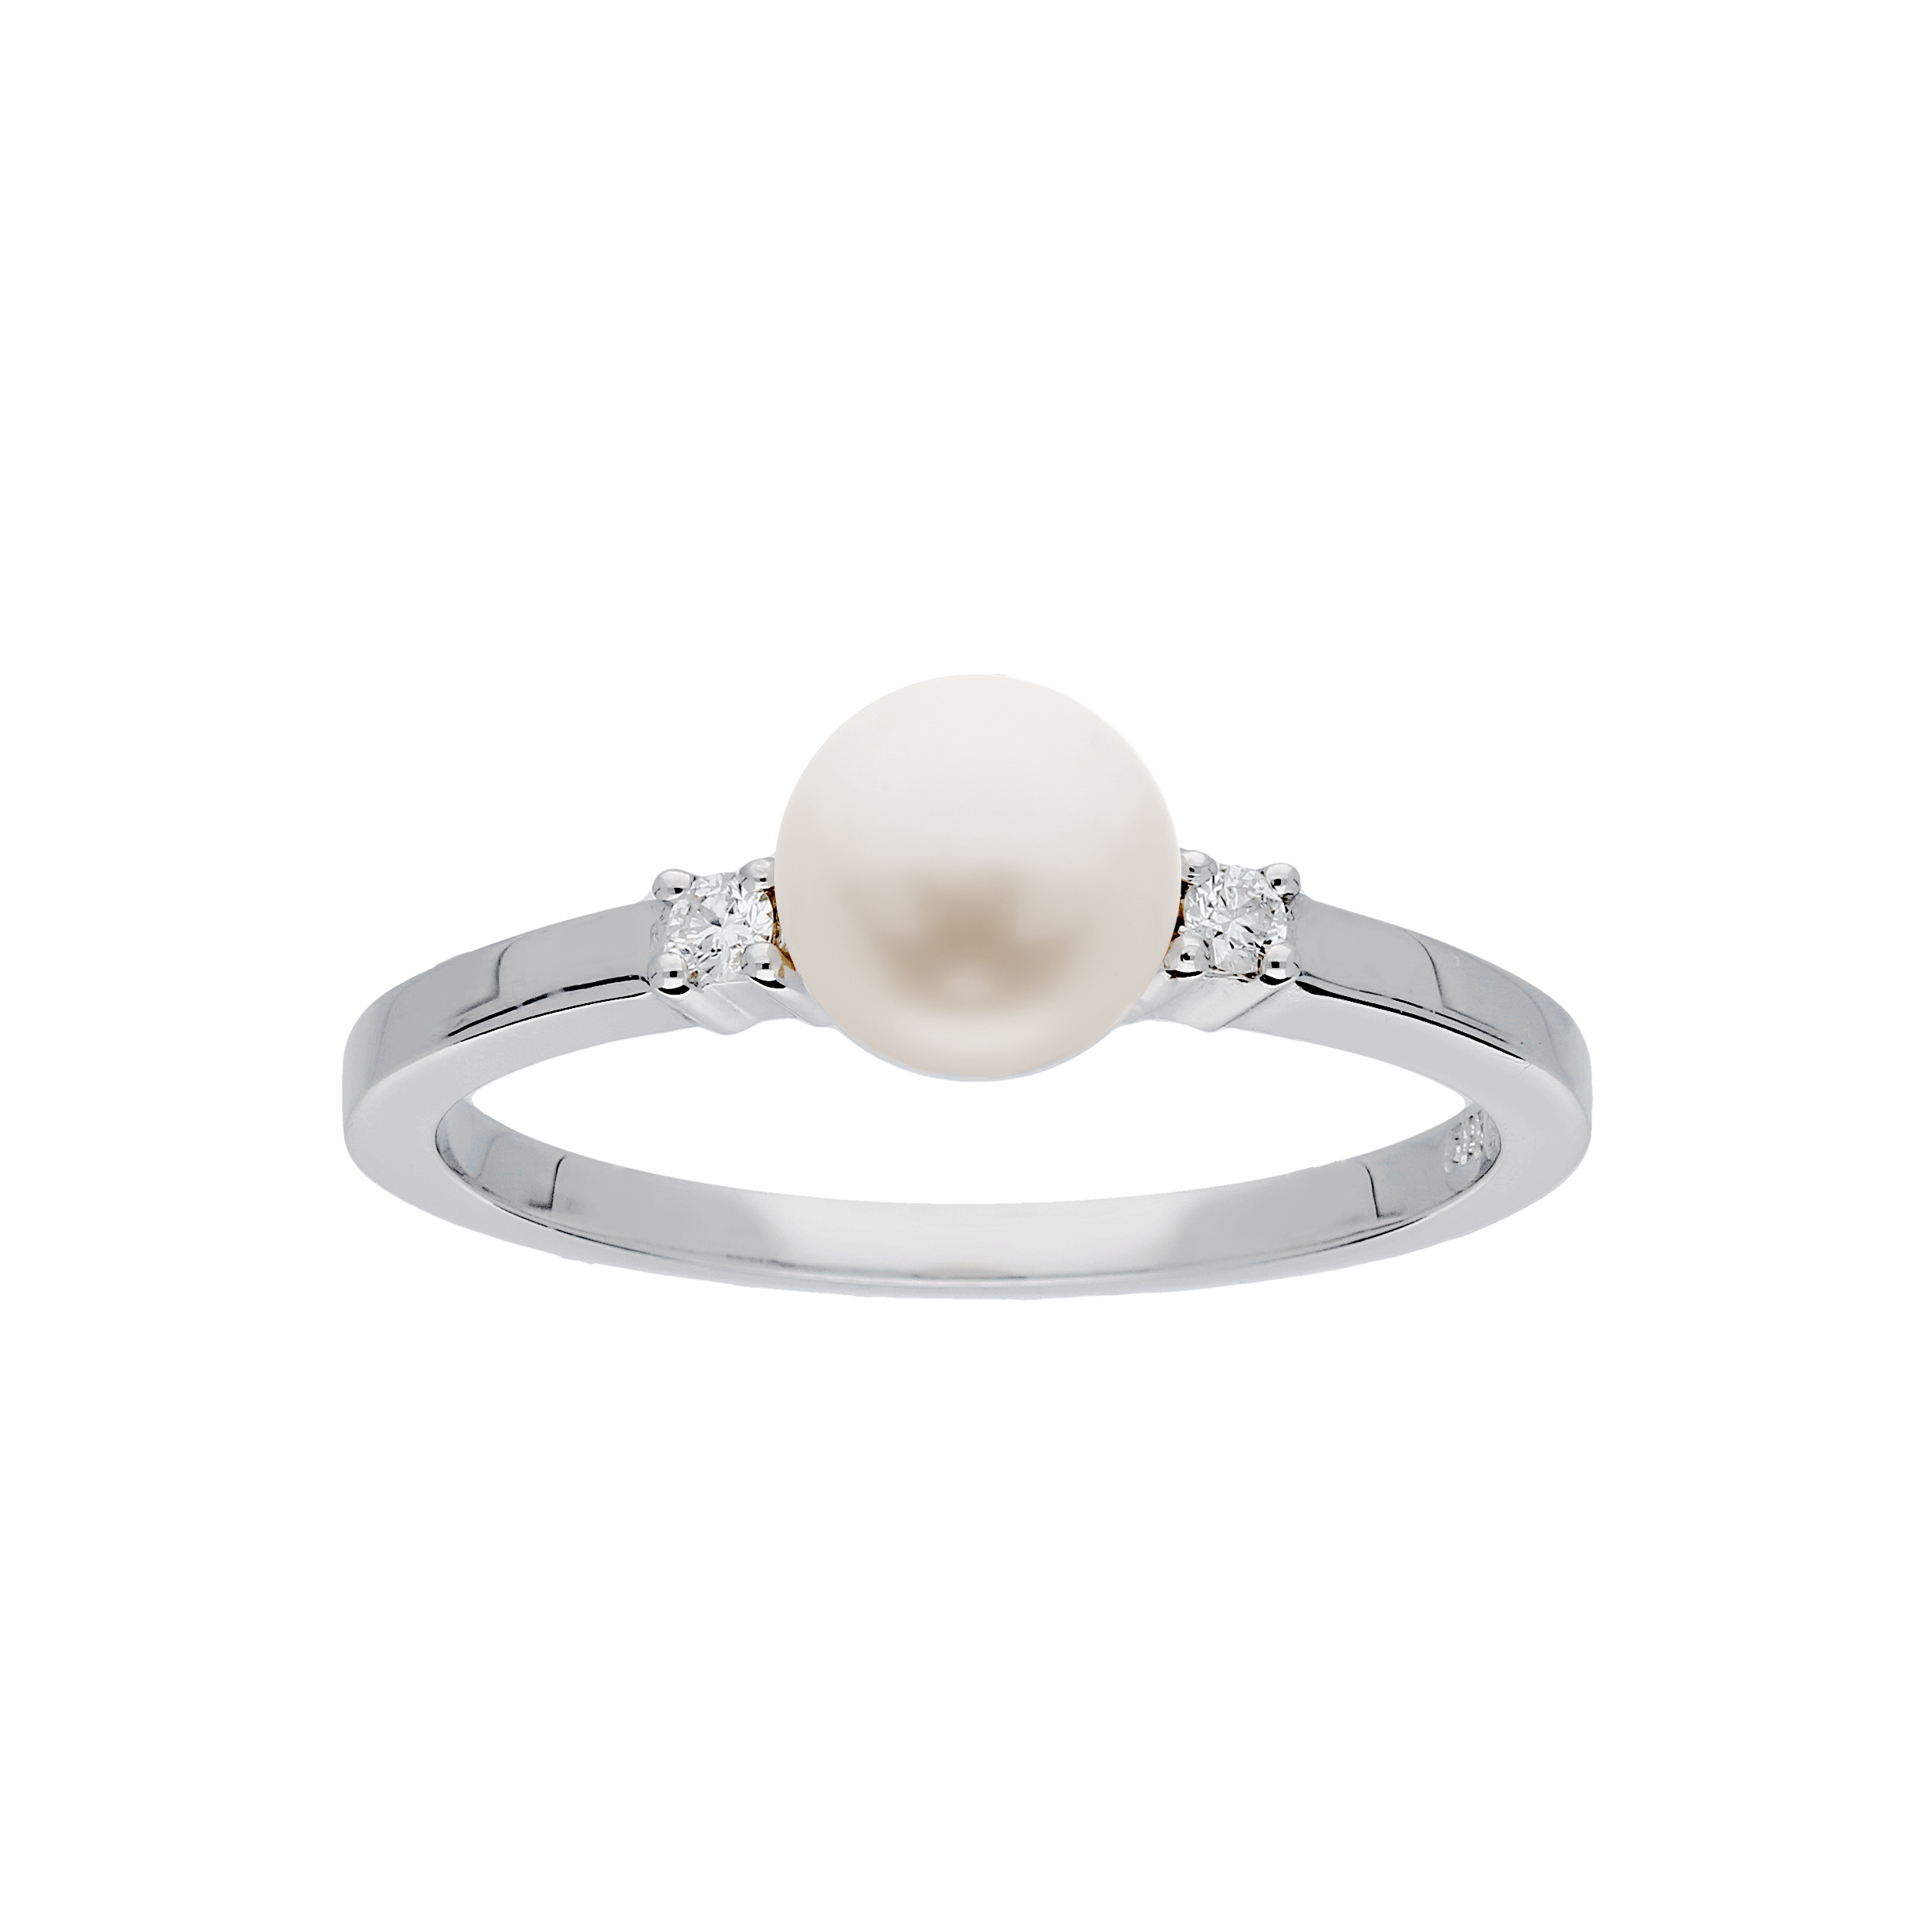 Glow Witgouden Ring Glanzend Parel Diamant 2 0.04ct G si 214.3025.56